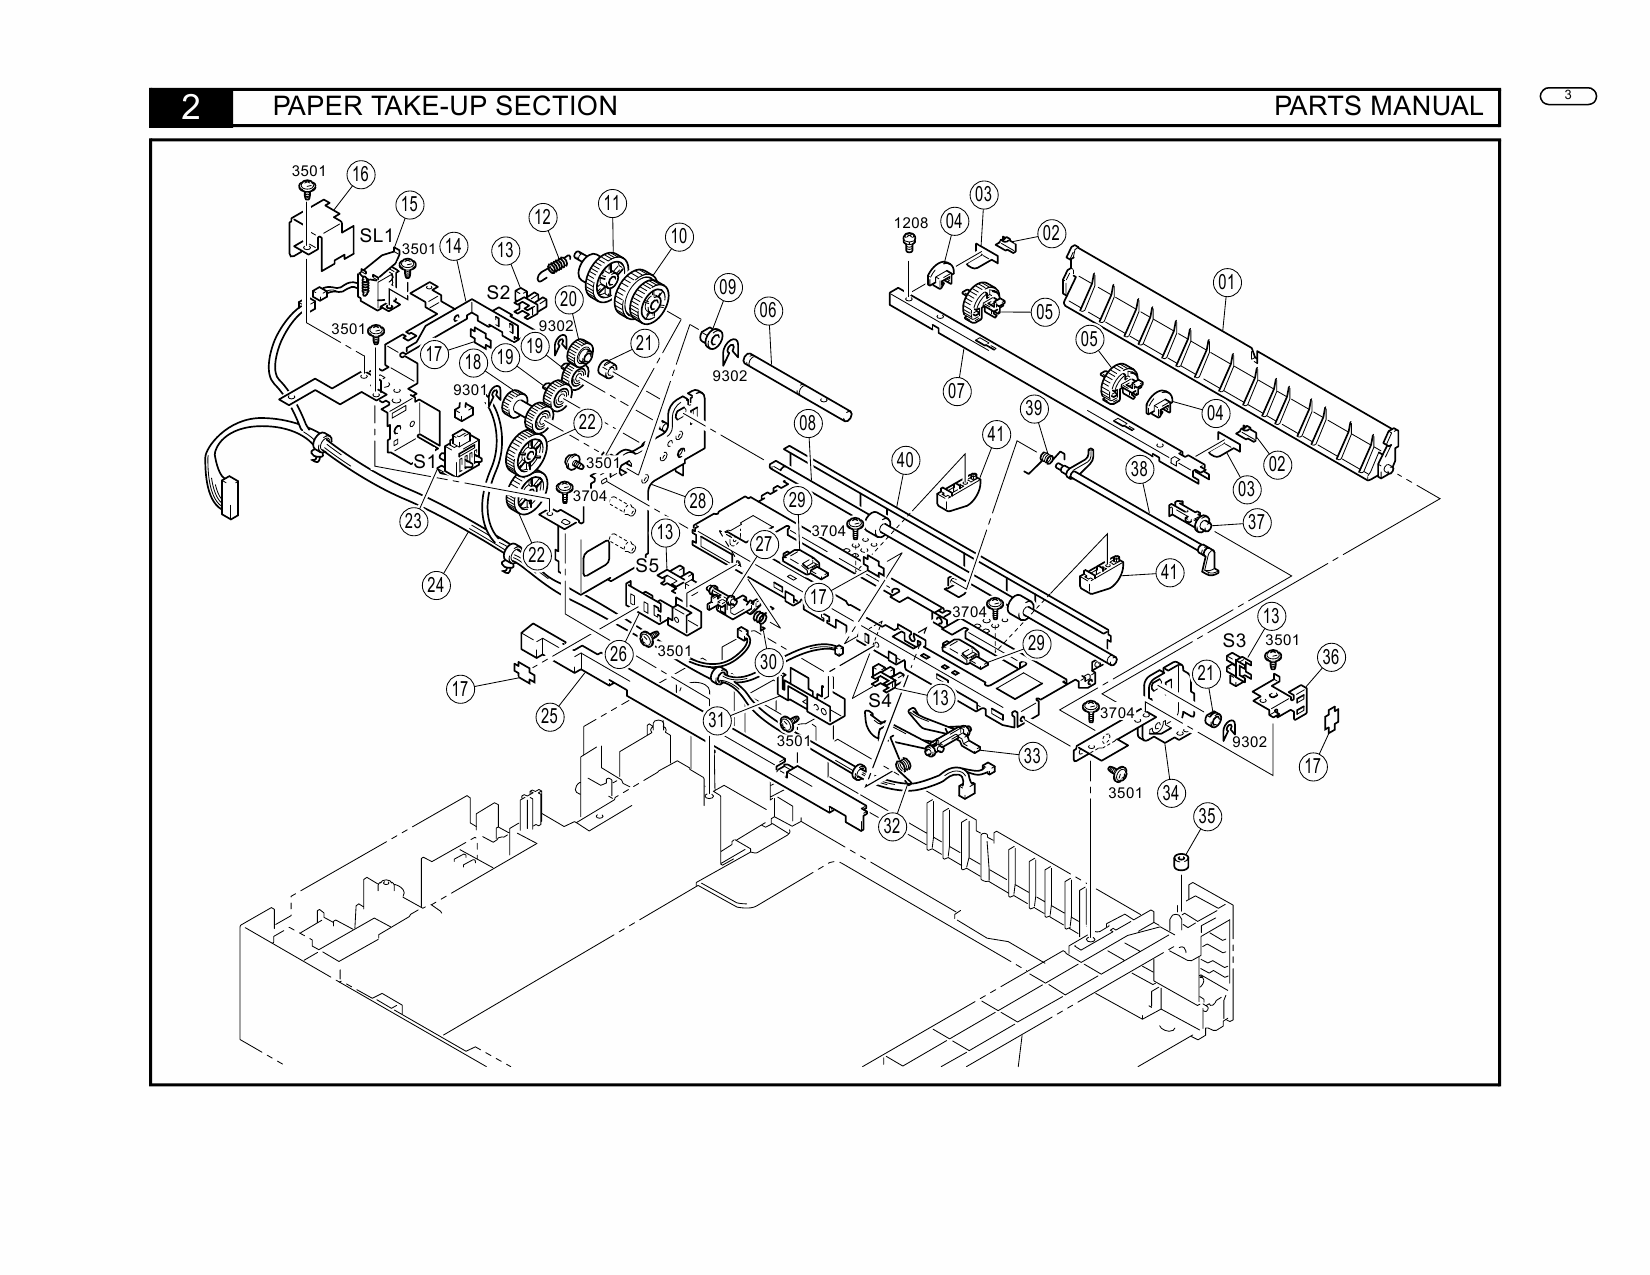 Konica-Minolta Options PF-108 110 Parts Manual-3